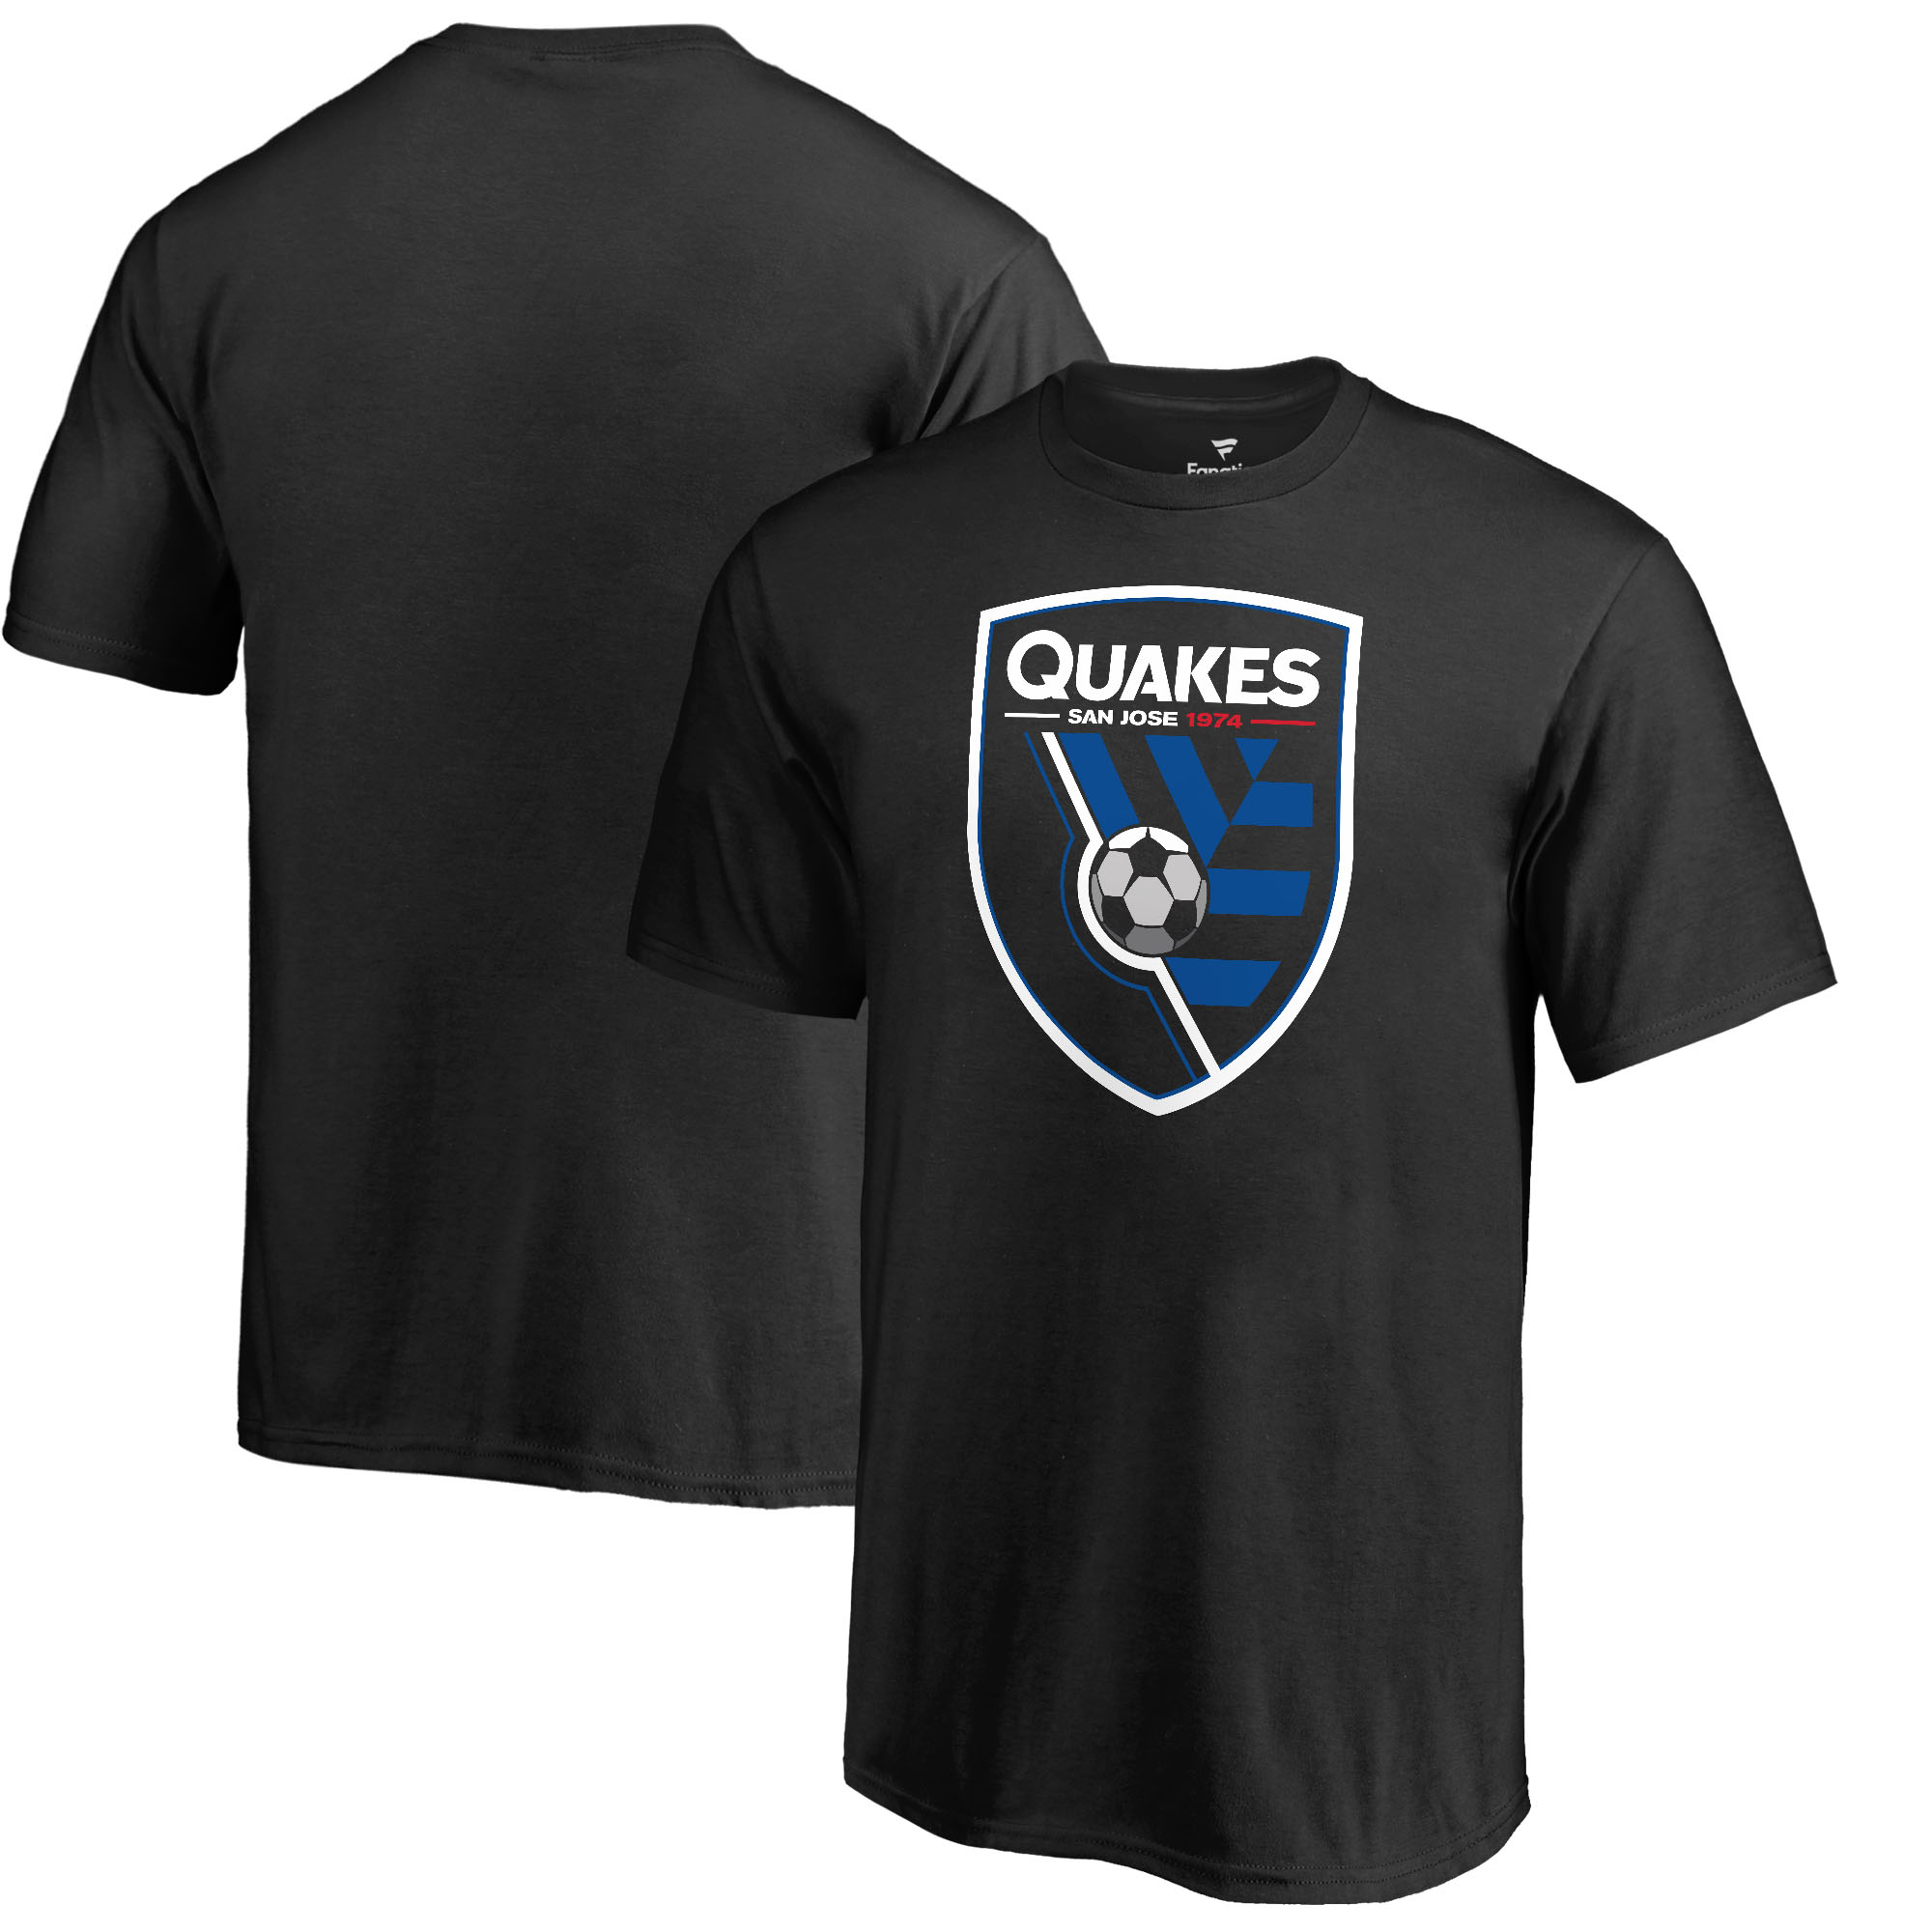 San Jose Earthquakes Fanatics Branded Youth Primary Logo T-Shirt - Black